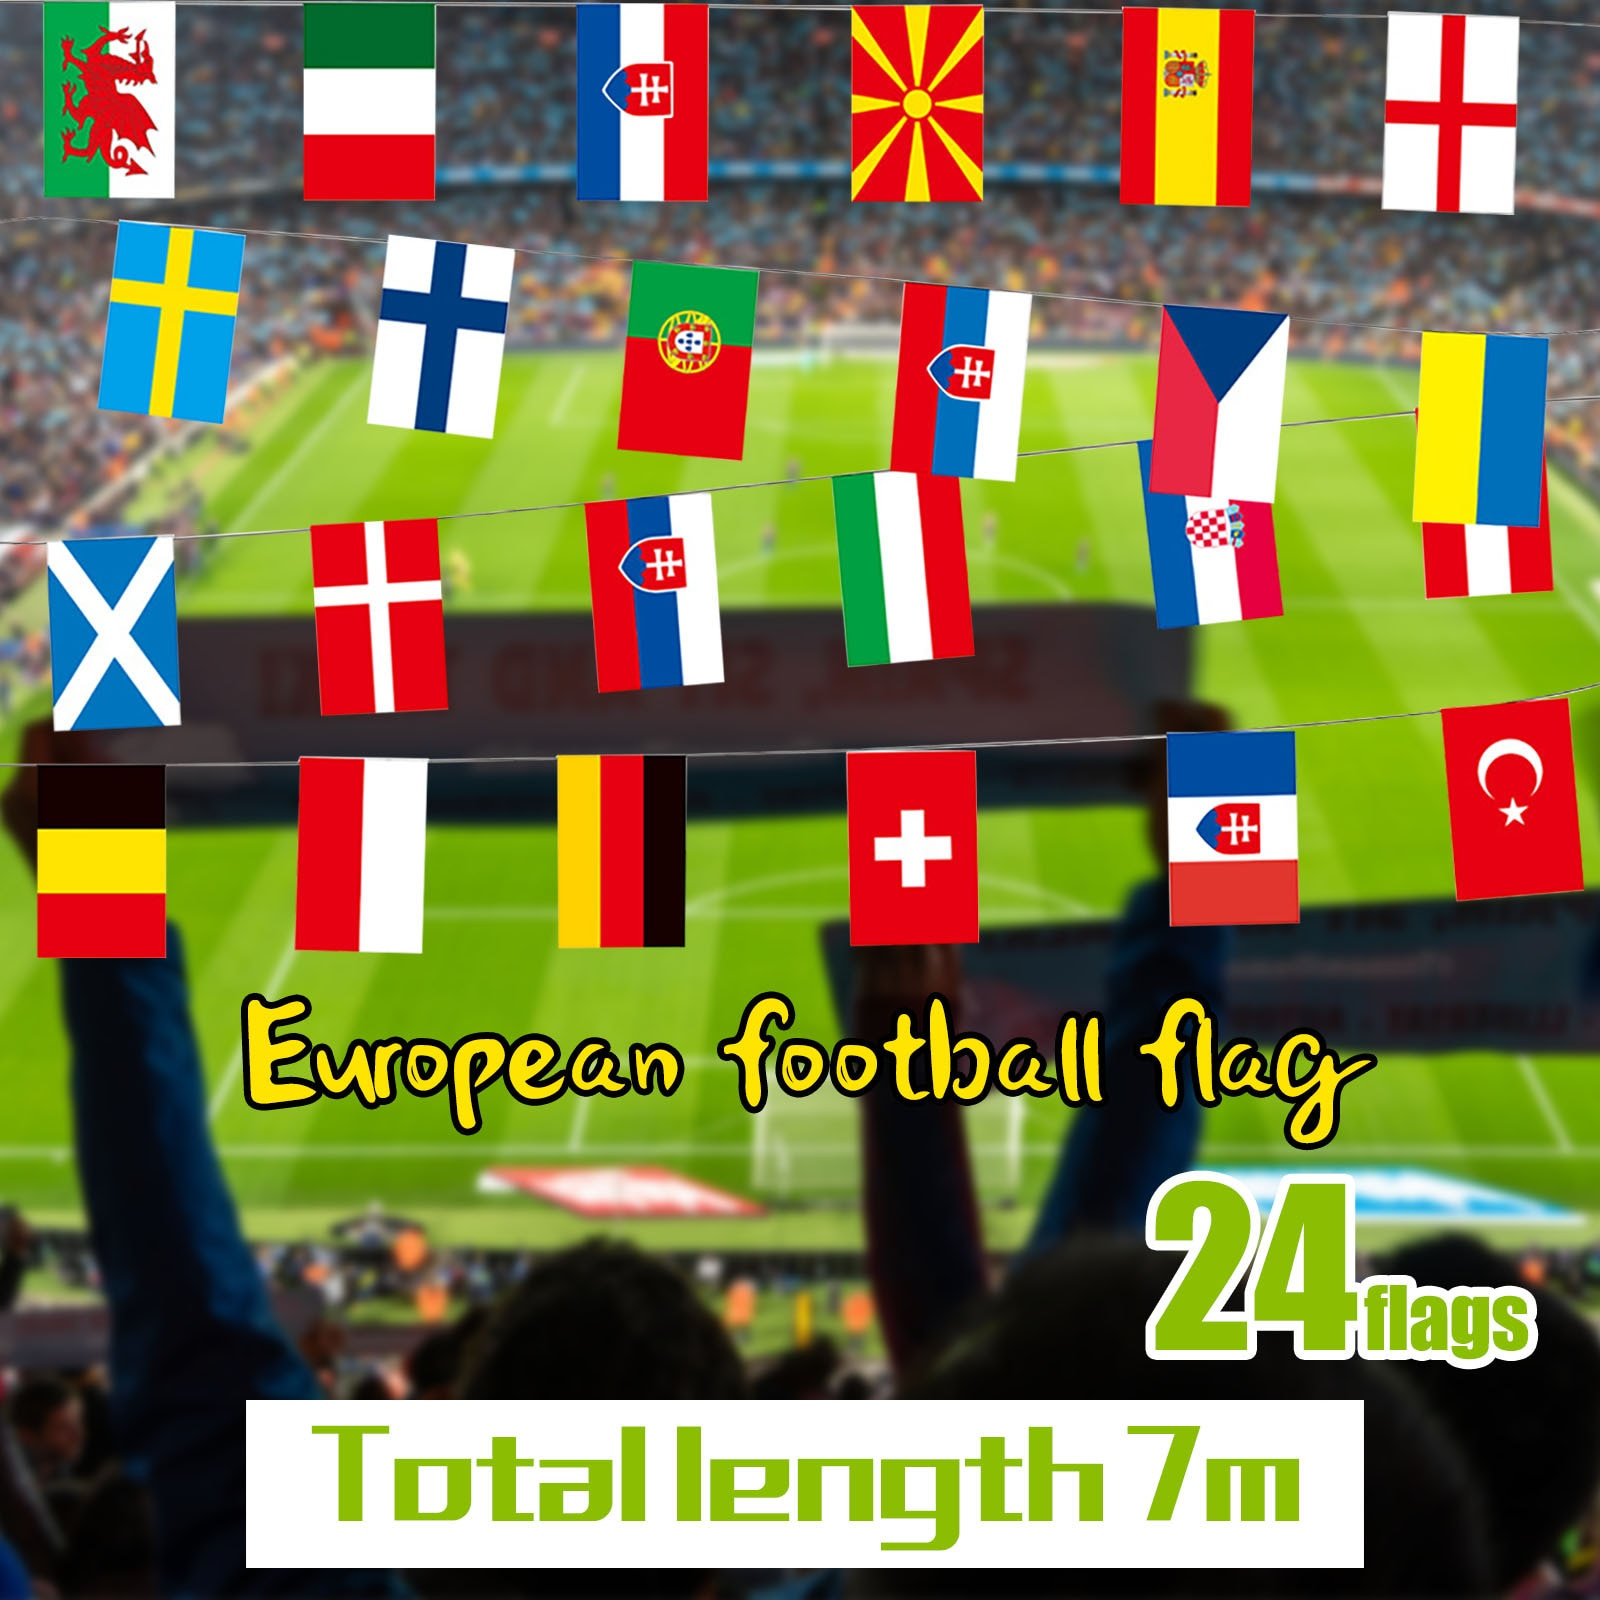 European Cup String Flags World Countries Flags 2021 European Cup Football Decor Small Flag Abanner Bunting Декор Комнаты